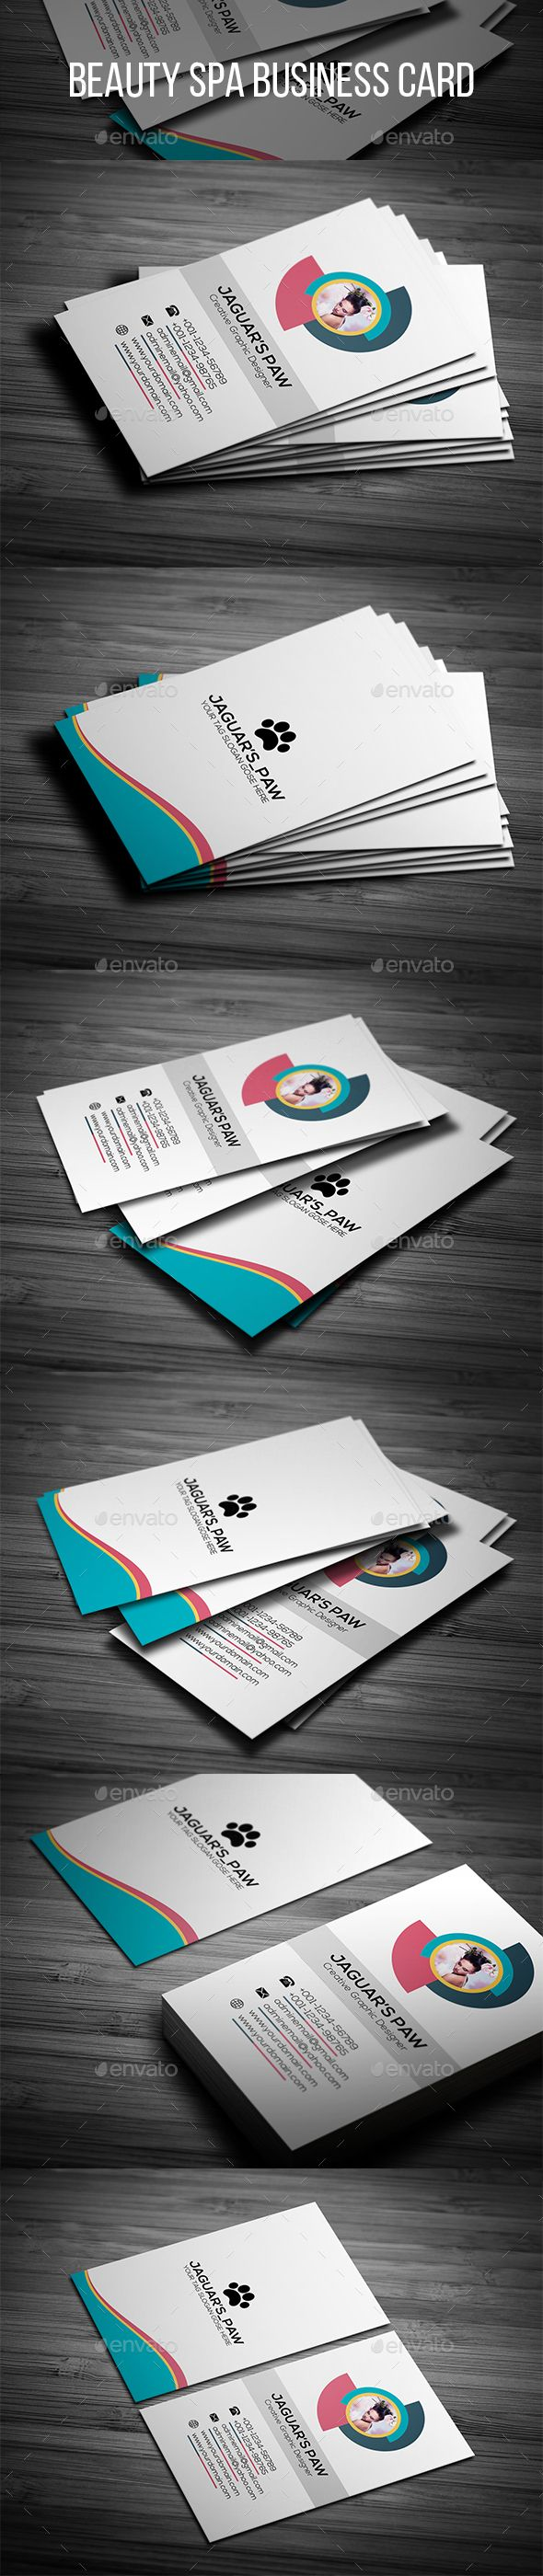 Best 25 spa business cards ideas on pinterest beauty salon beauty spa business card reheart Images